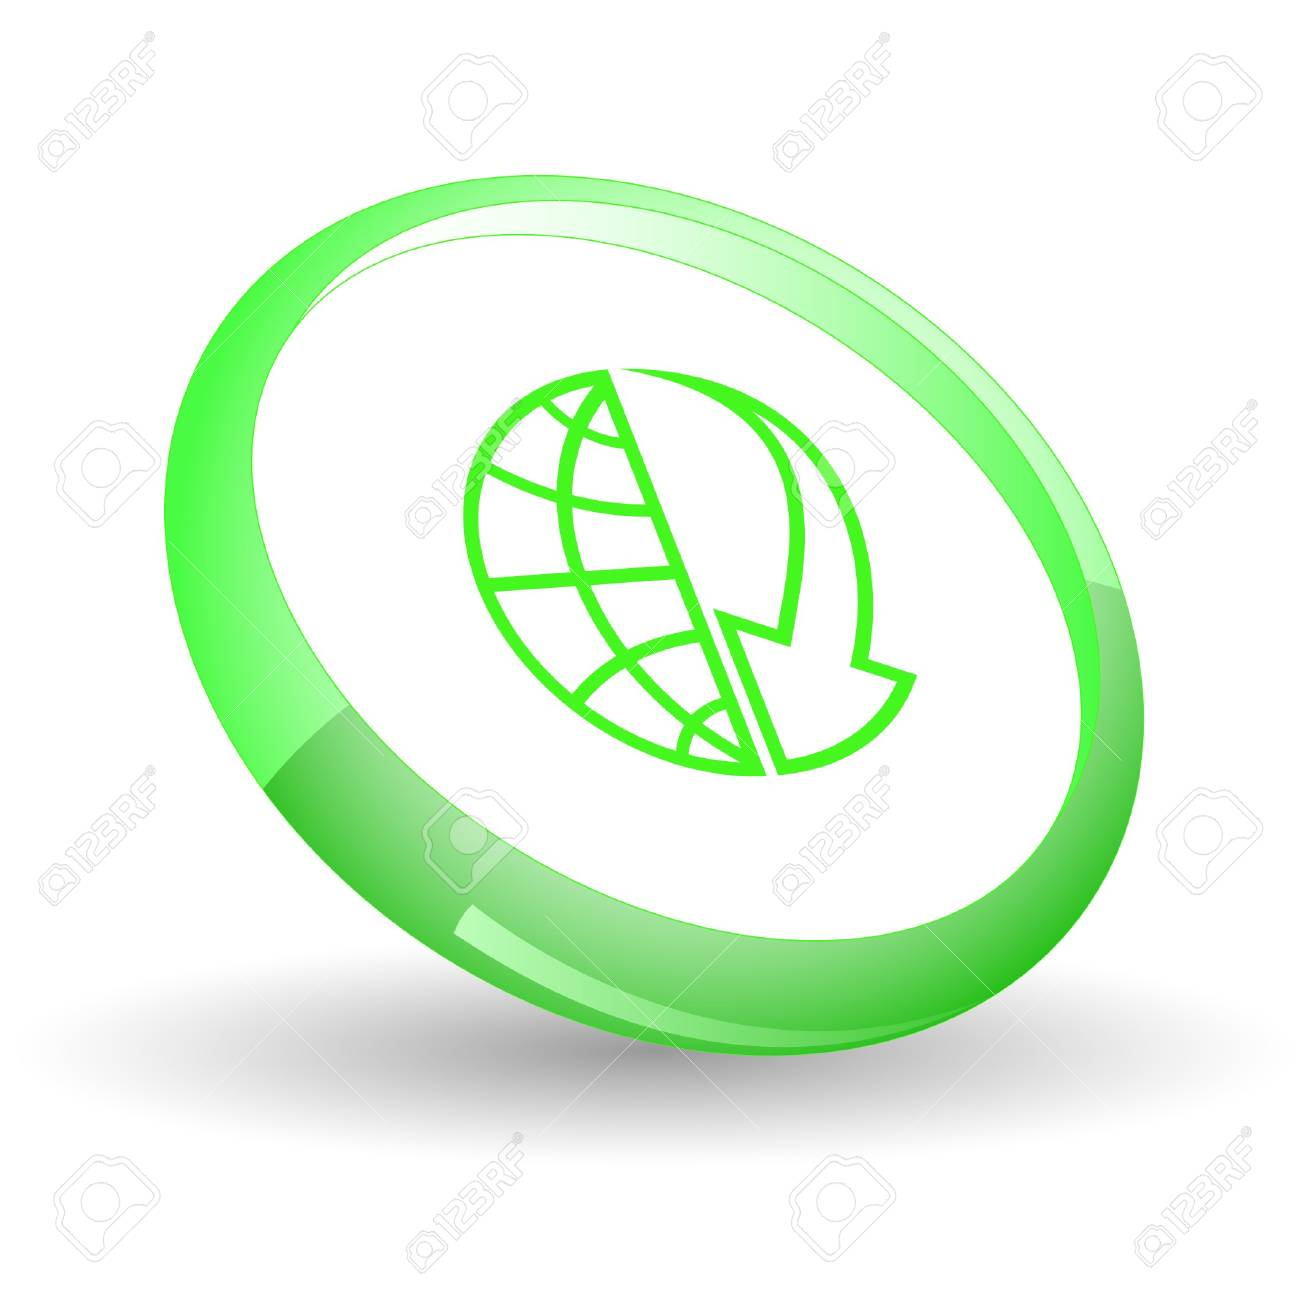 Globe and array down. Stock Vector - 7169926